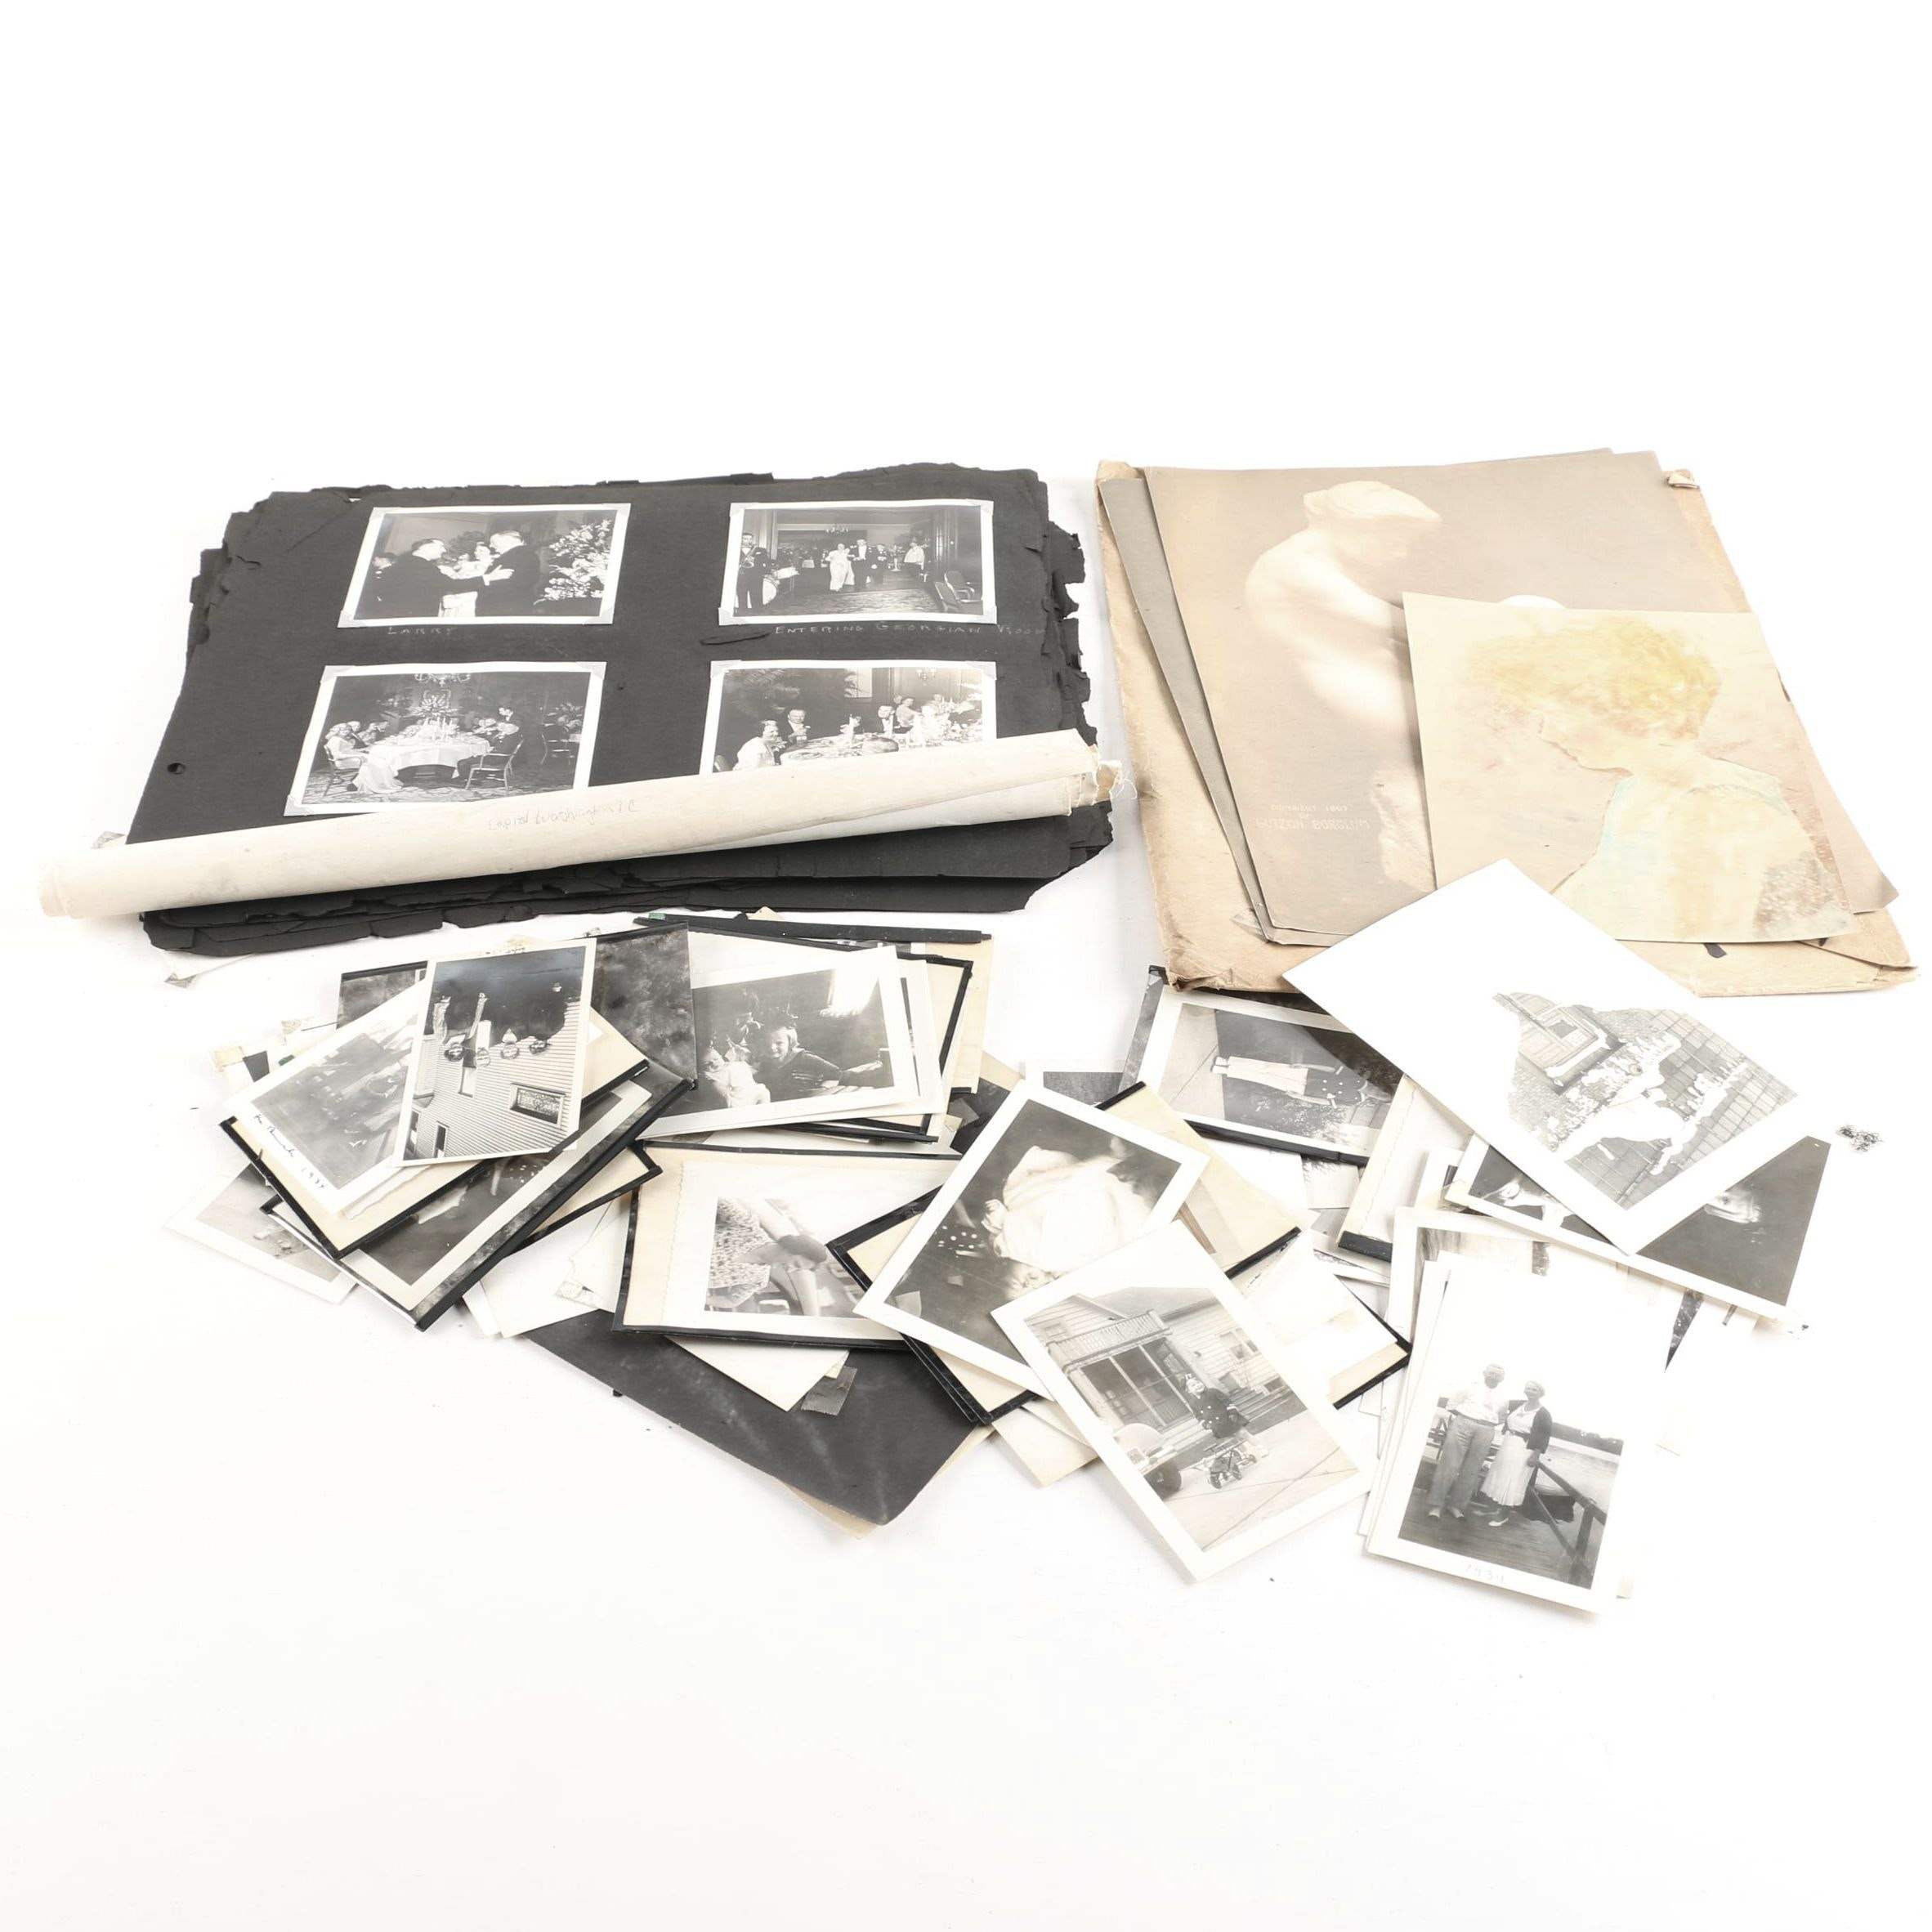 Vintage Loose Photographs and Scrapbooks